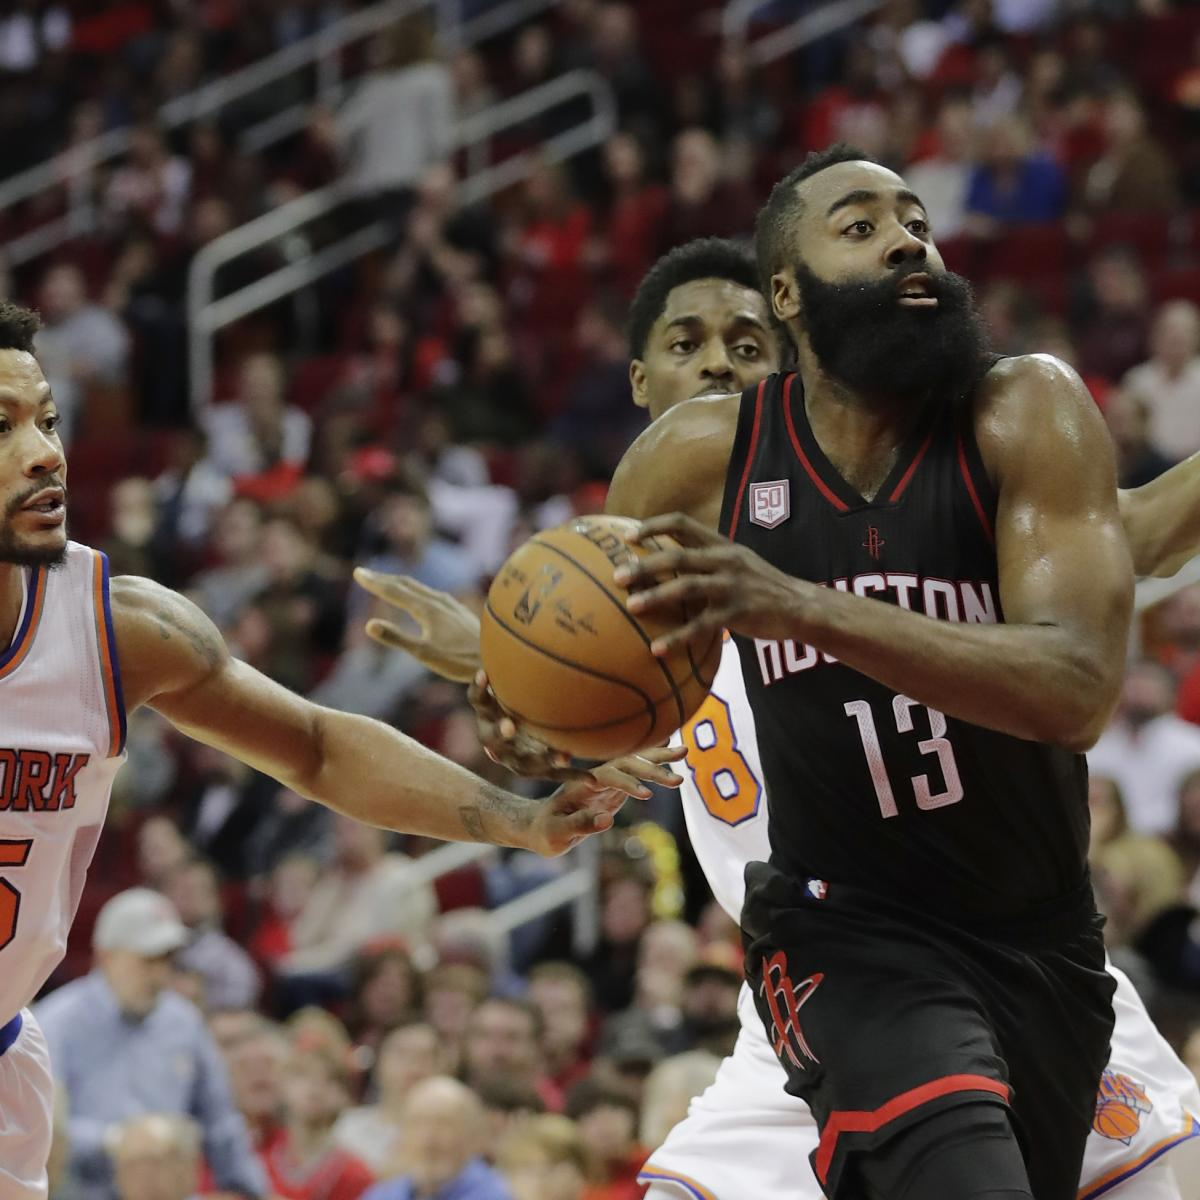 James Harden Yearly Stats: James Harden Vs. Knicks: Stats, Highlights And Reaction